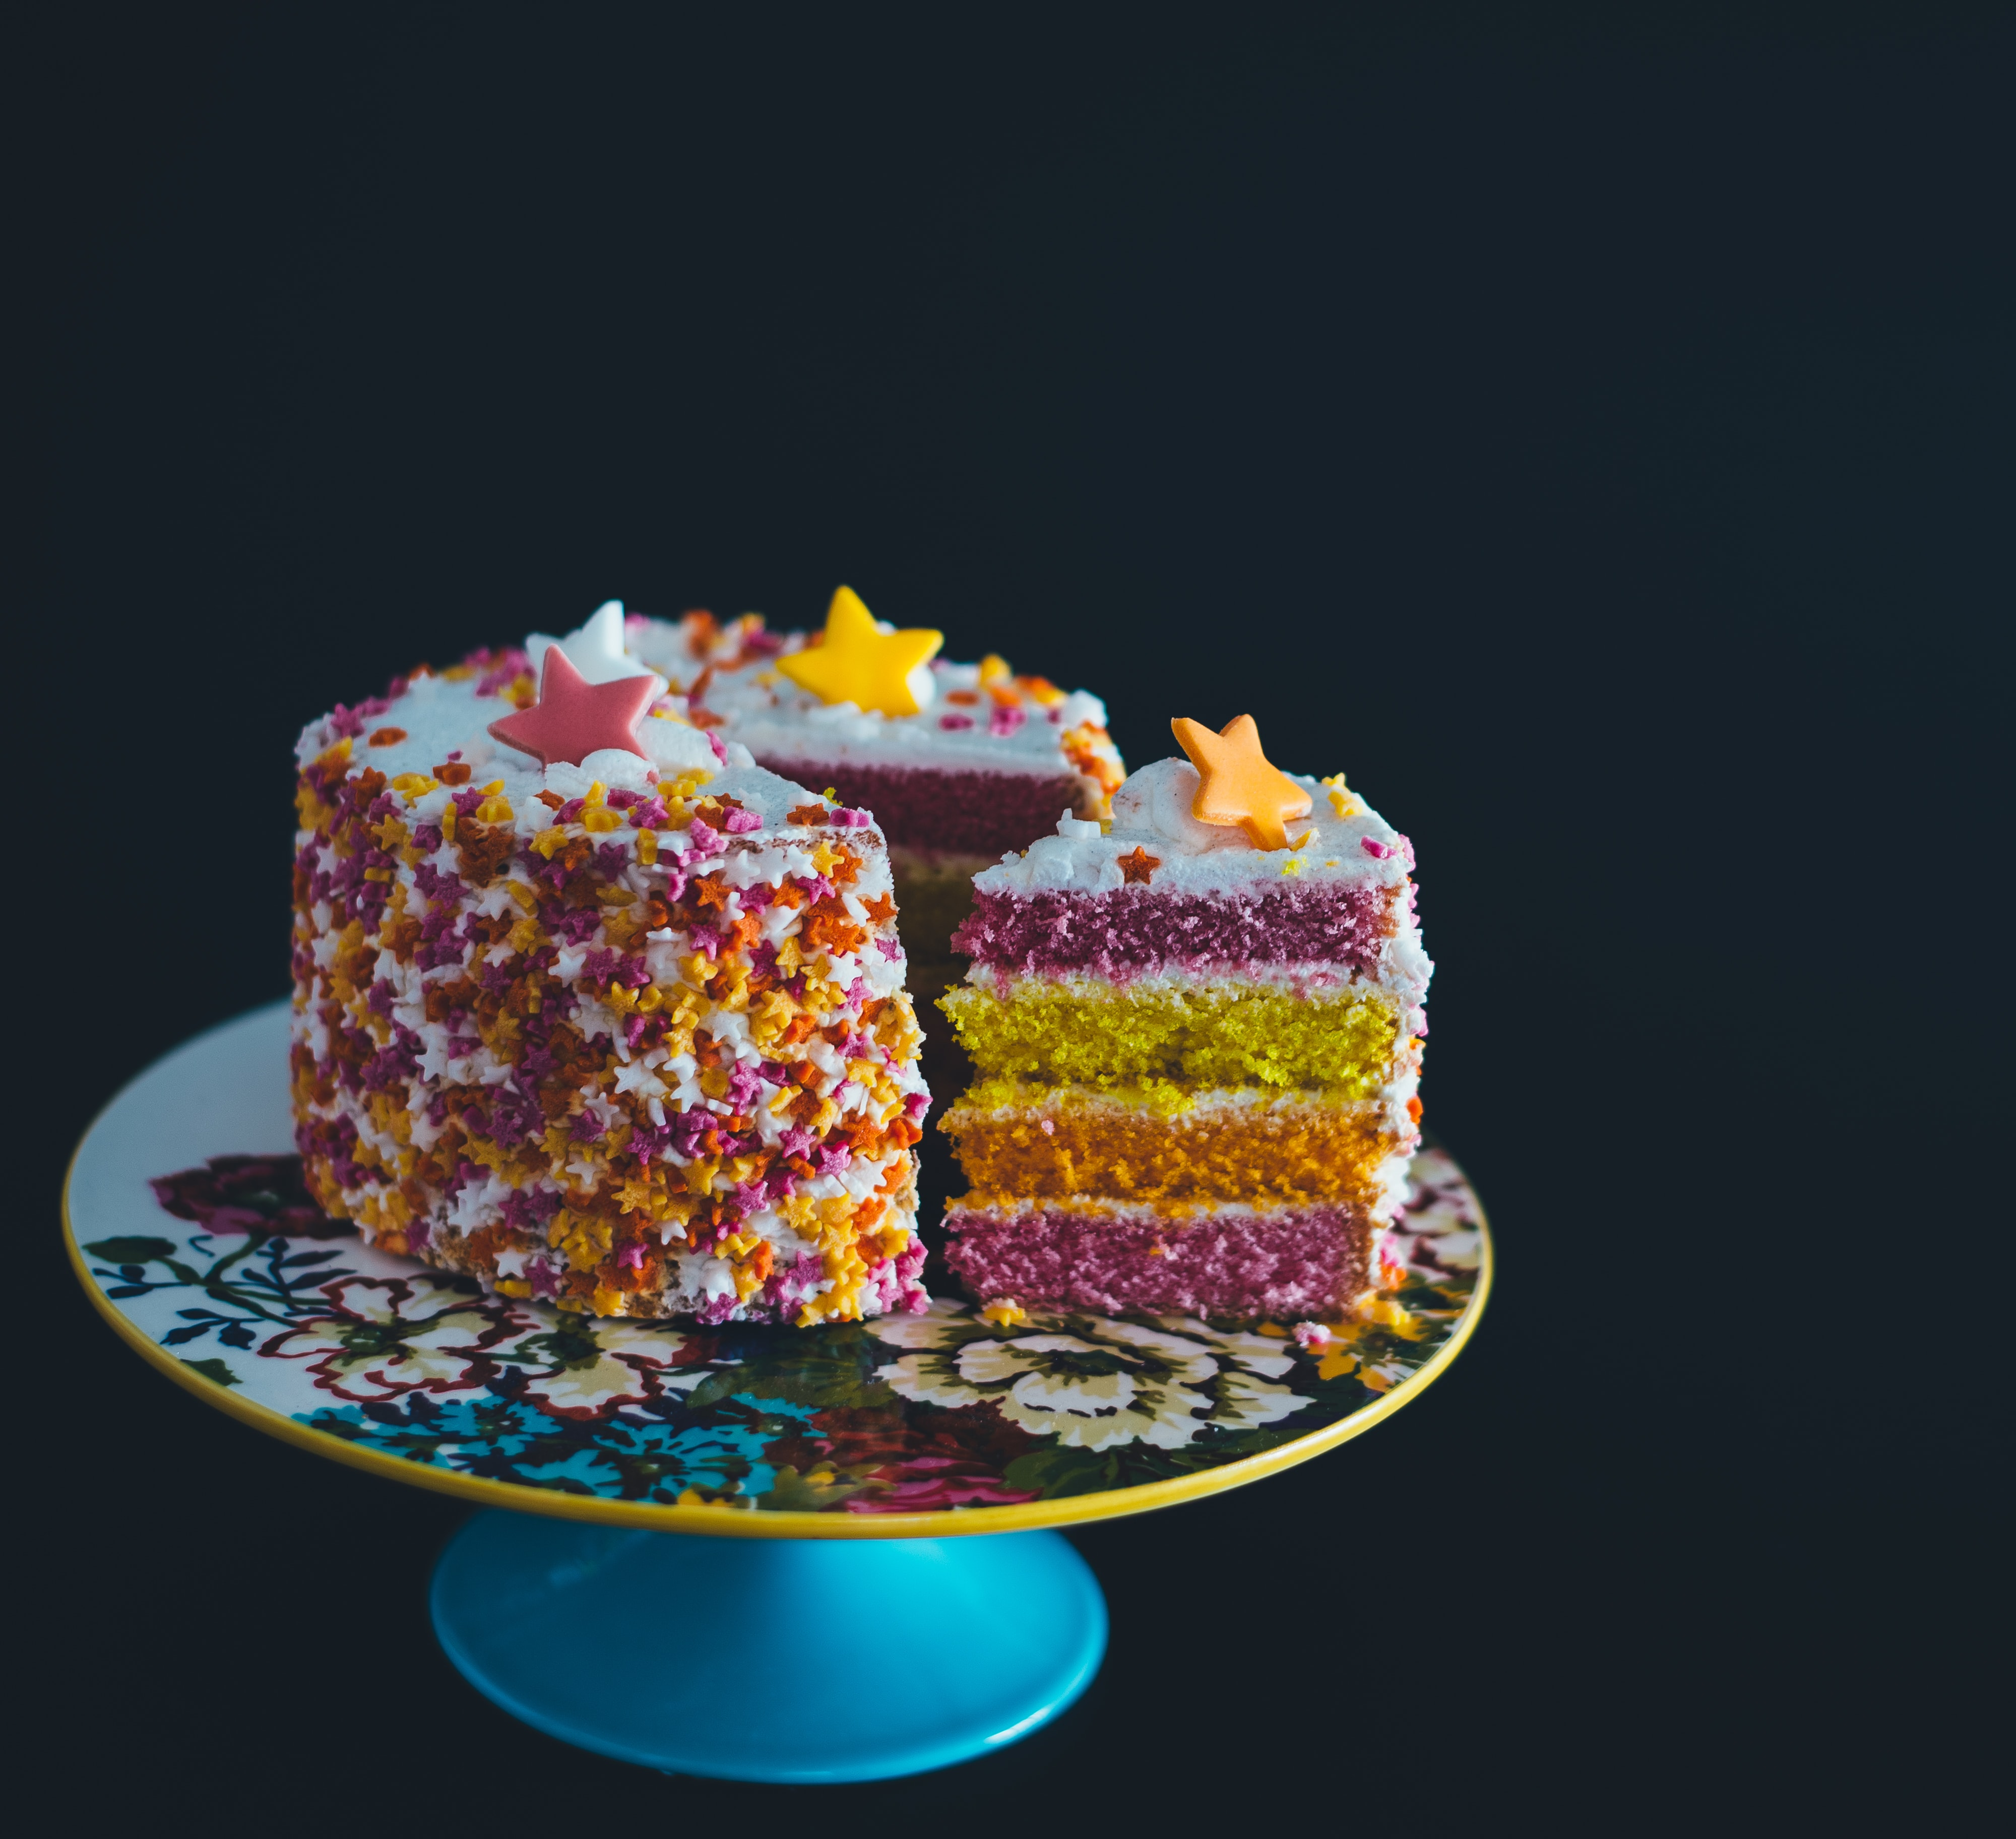 Colorful birthday cake with candy frosting stars